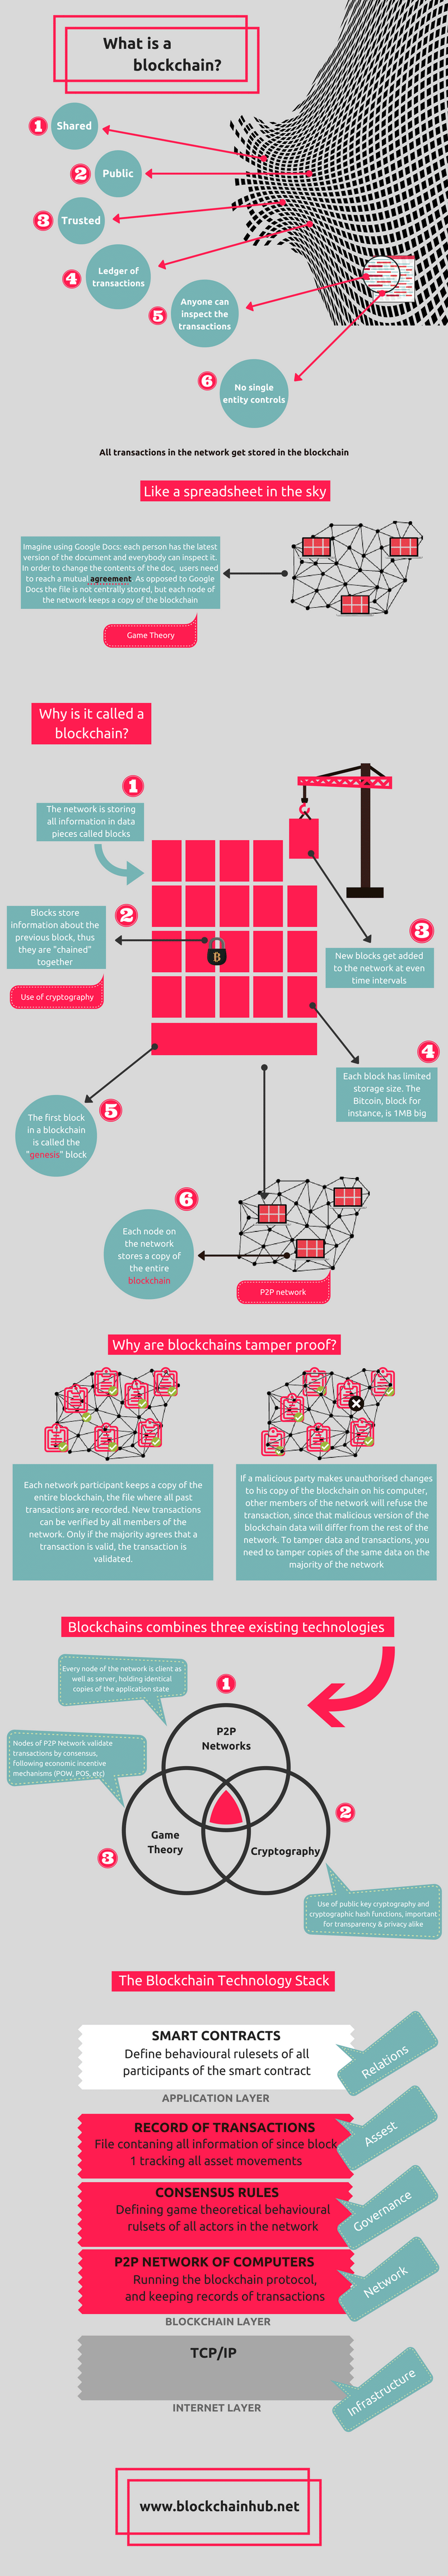 blockchain, infographic2